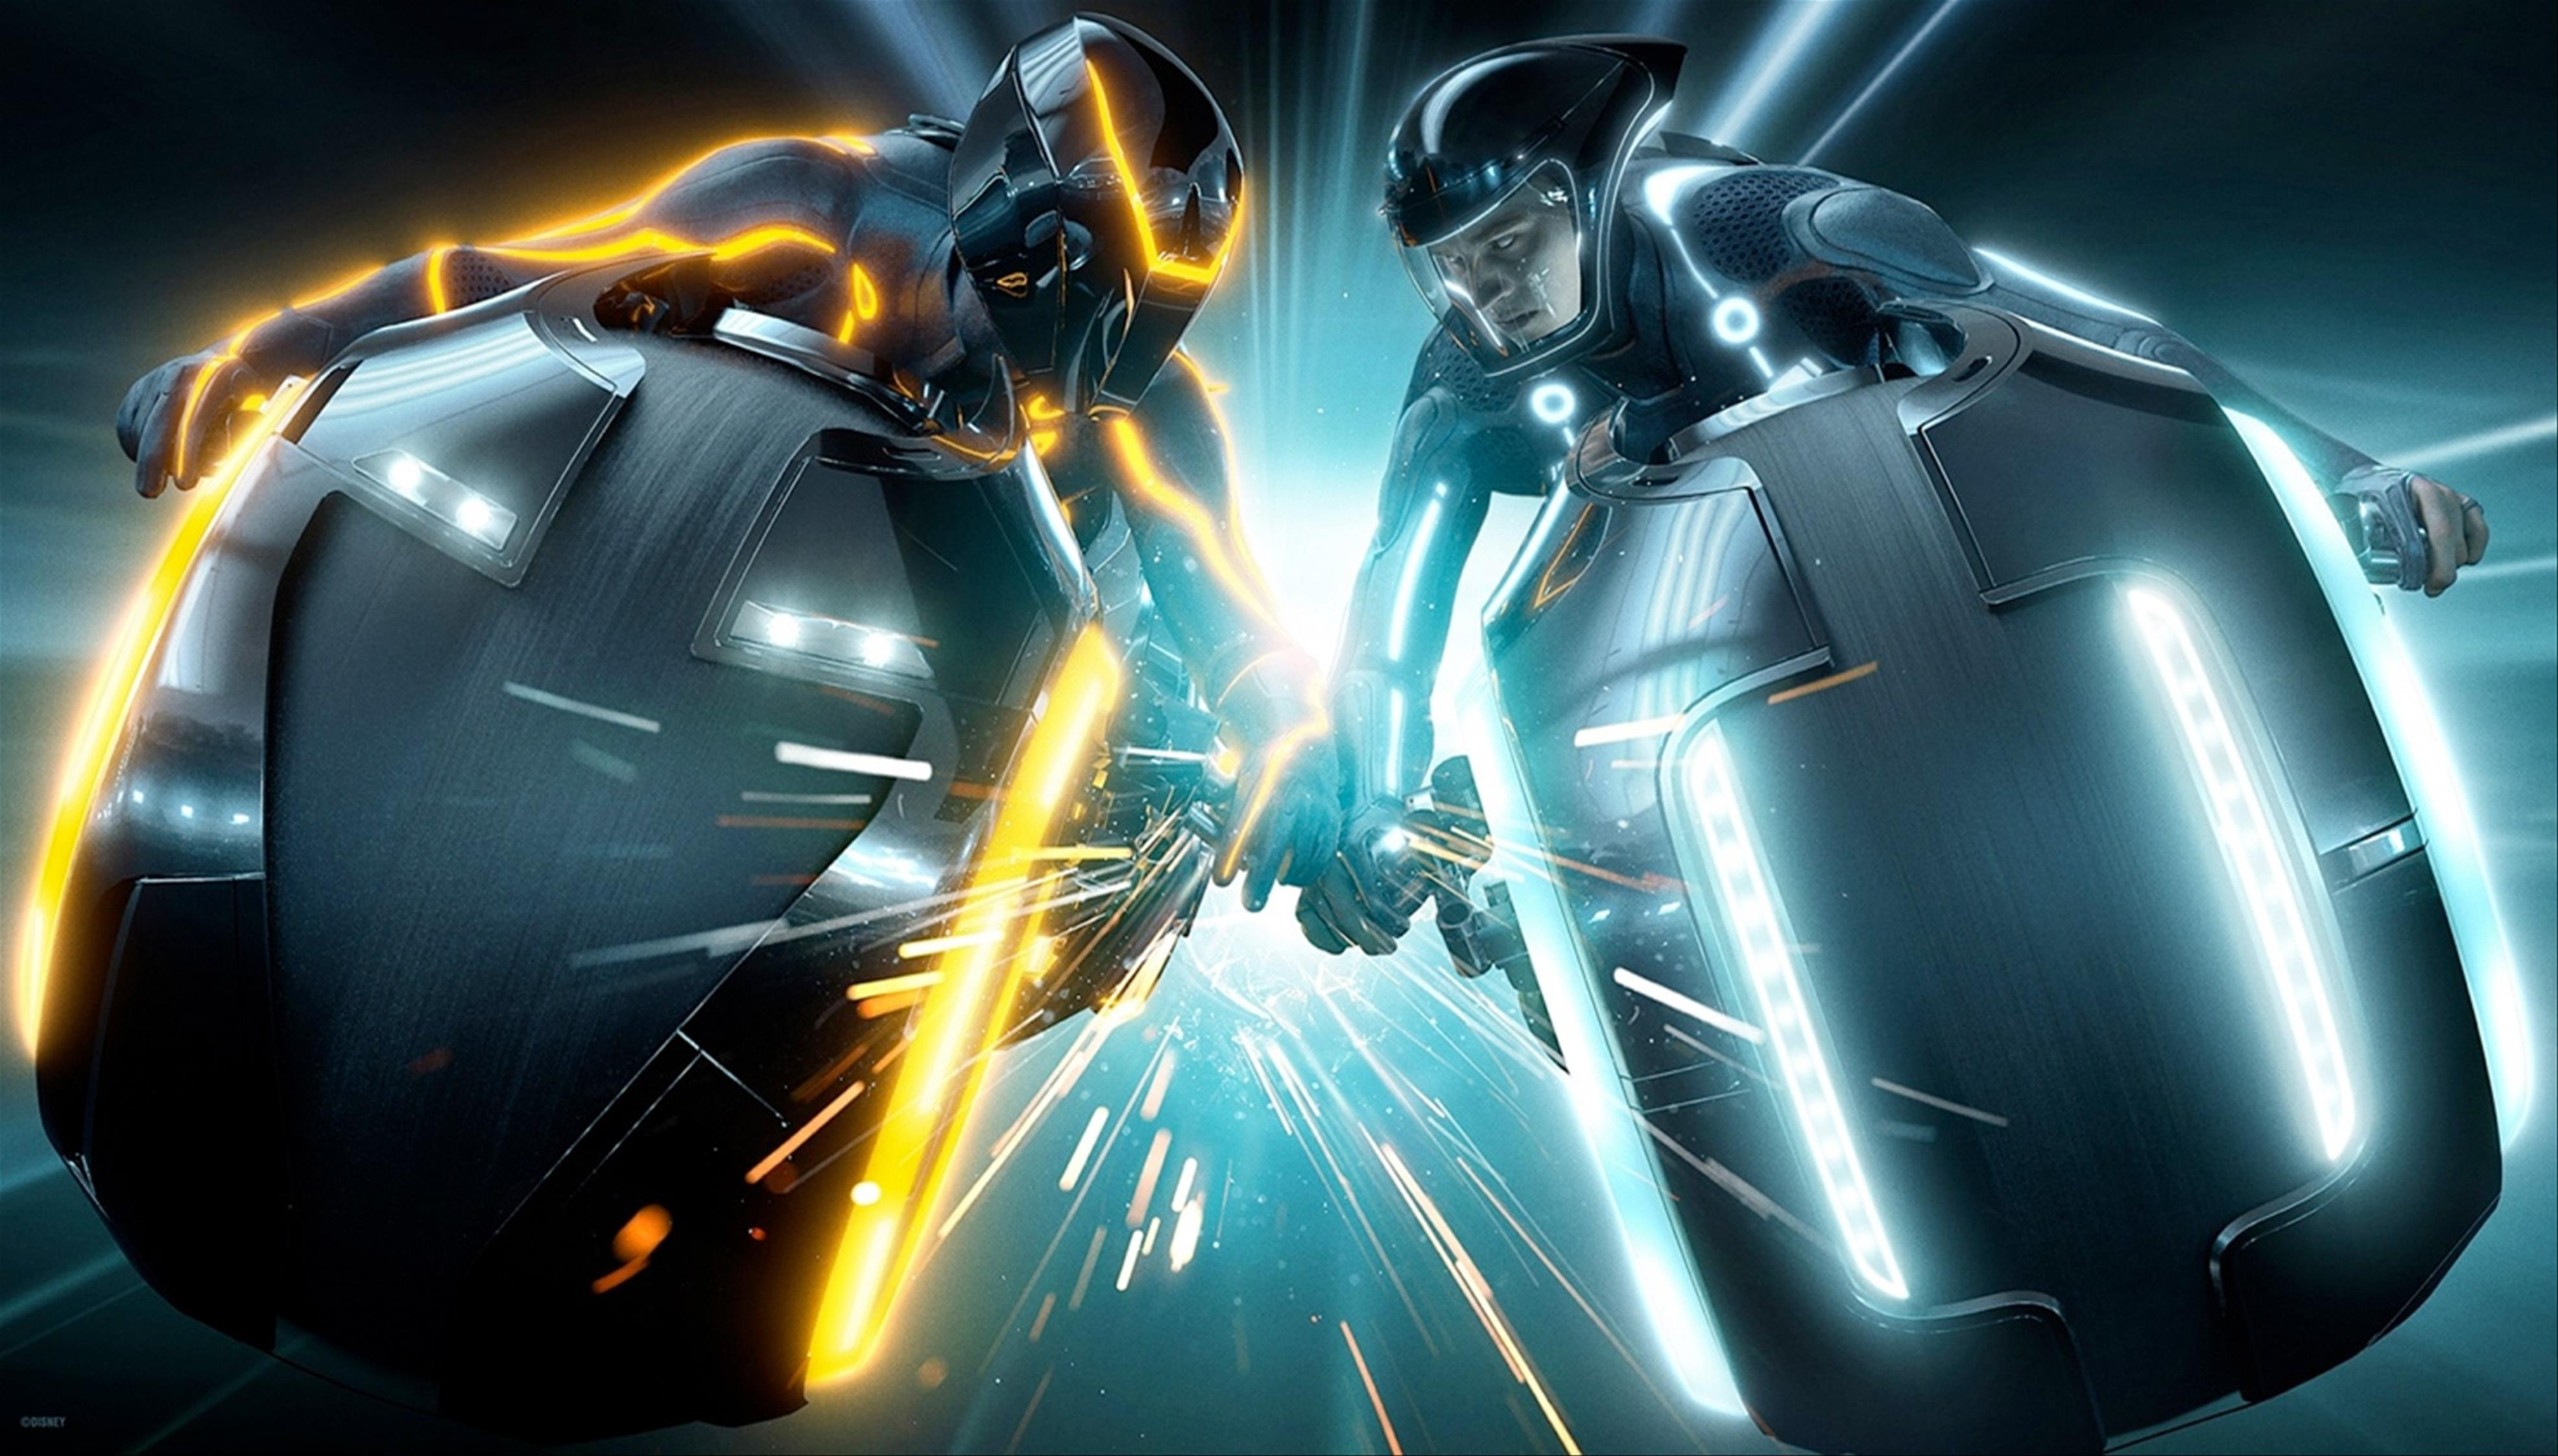 Could More Tron Be Coming To Disney Infinity?